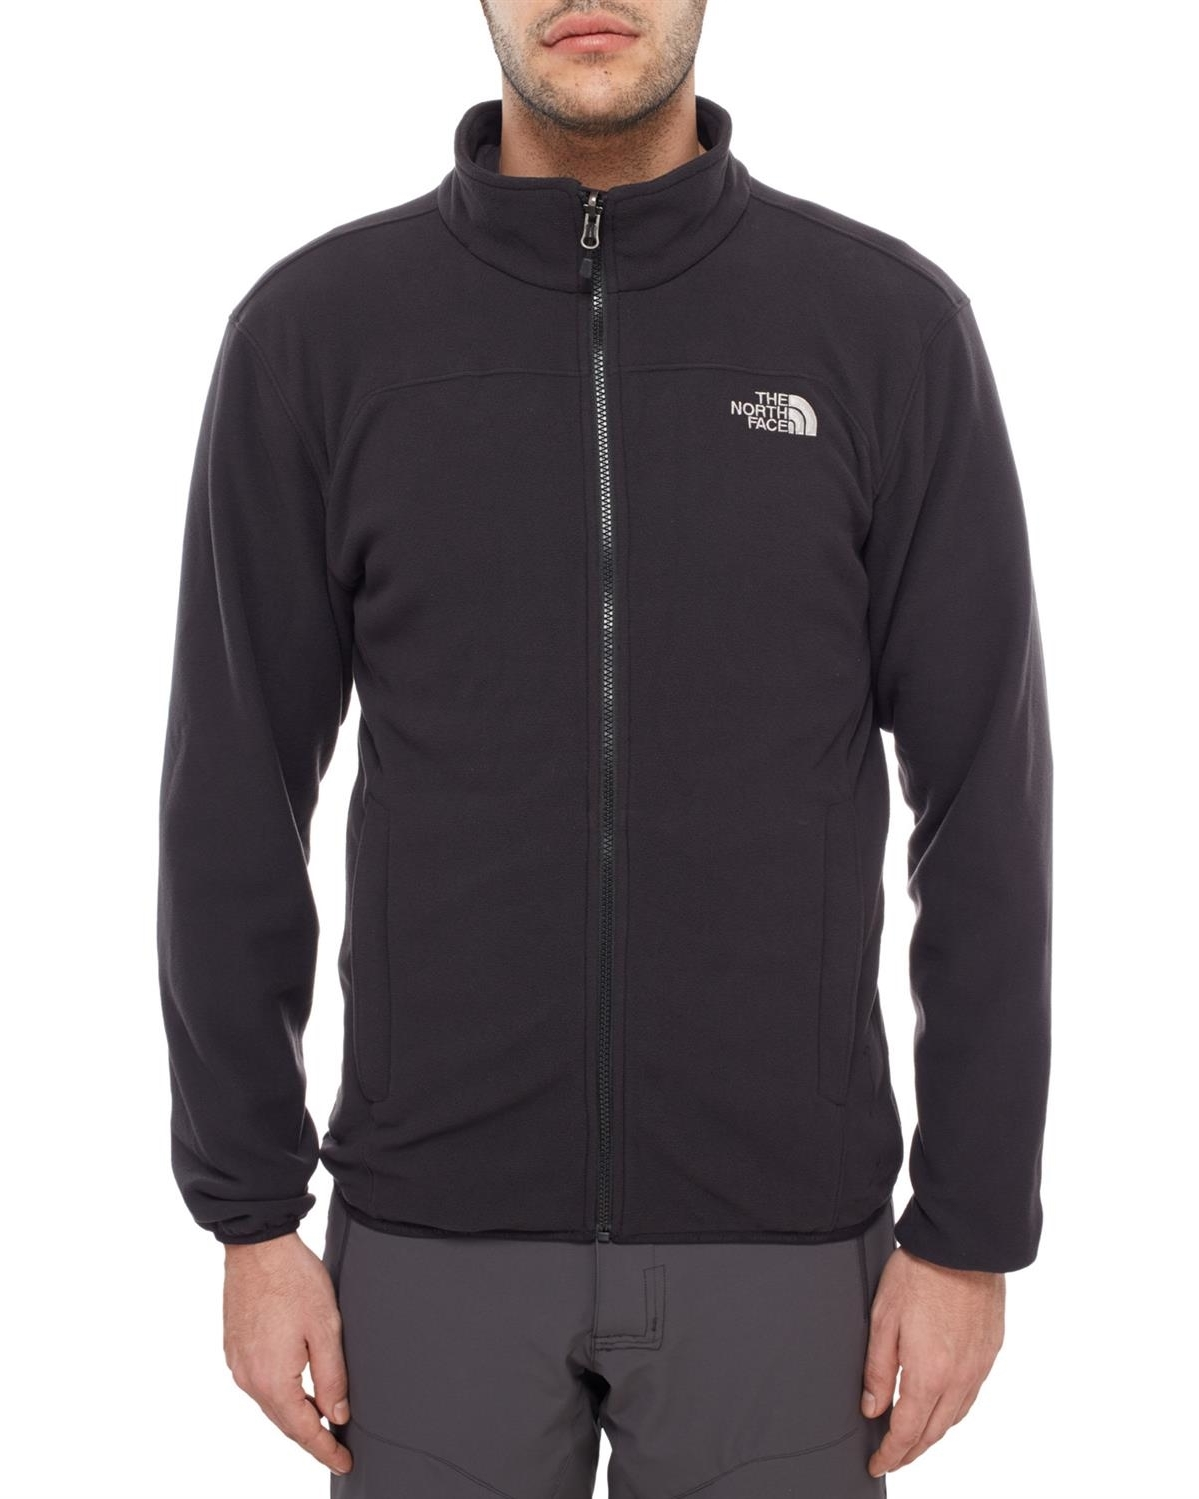 Giacca Uomo The North Face Evolve II Triclimate Nero T0CG55JK3 6a81e01f0e36